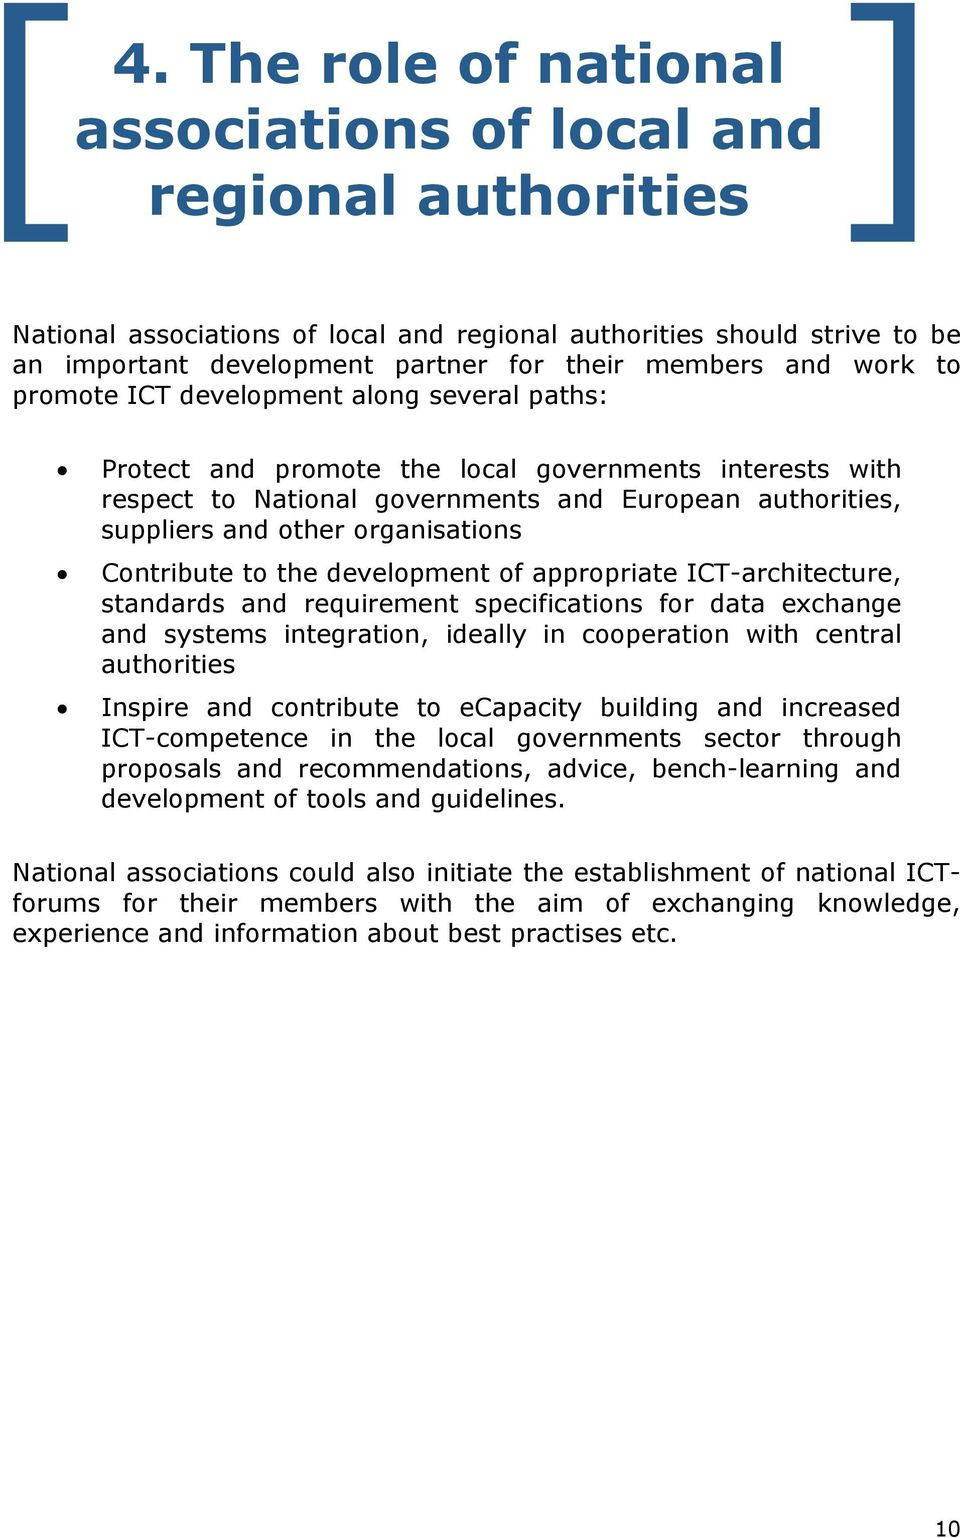 Protect and promote the local governments interests with respect to National governments and European authorities, suppliers and other organisations!